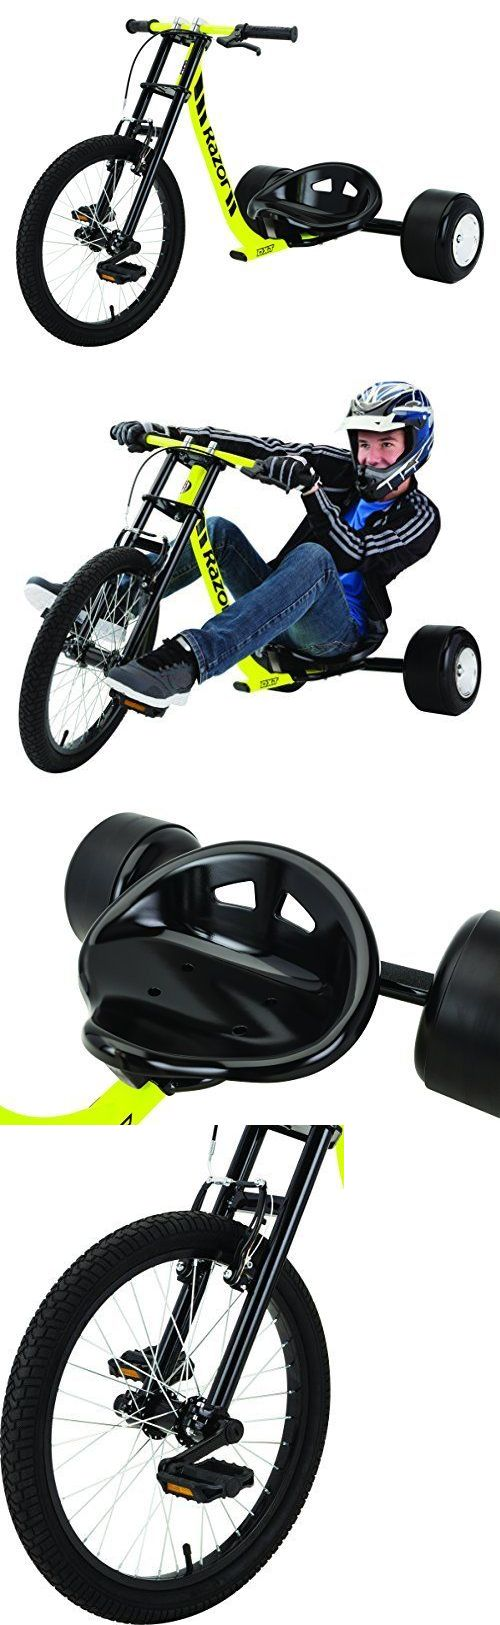 Complete Go-Karts and Frames 64656: Razor Dxt Drift Trike New Tricycle Kids Big Wheel Stunt -> BUY IT NOW ONLY: $131.55 on eBay!